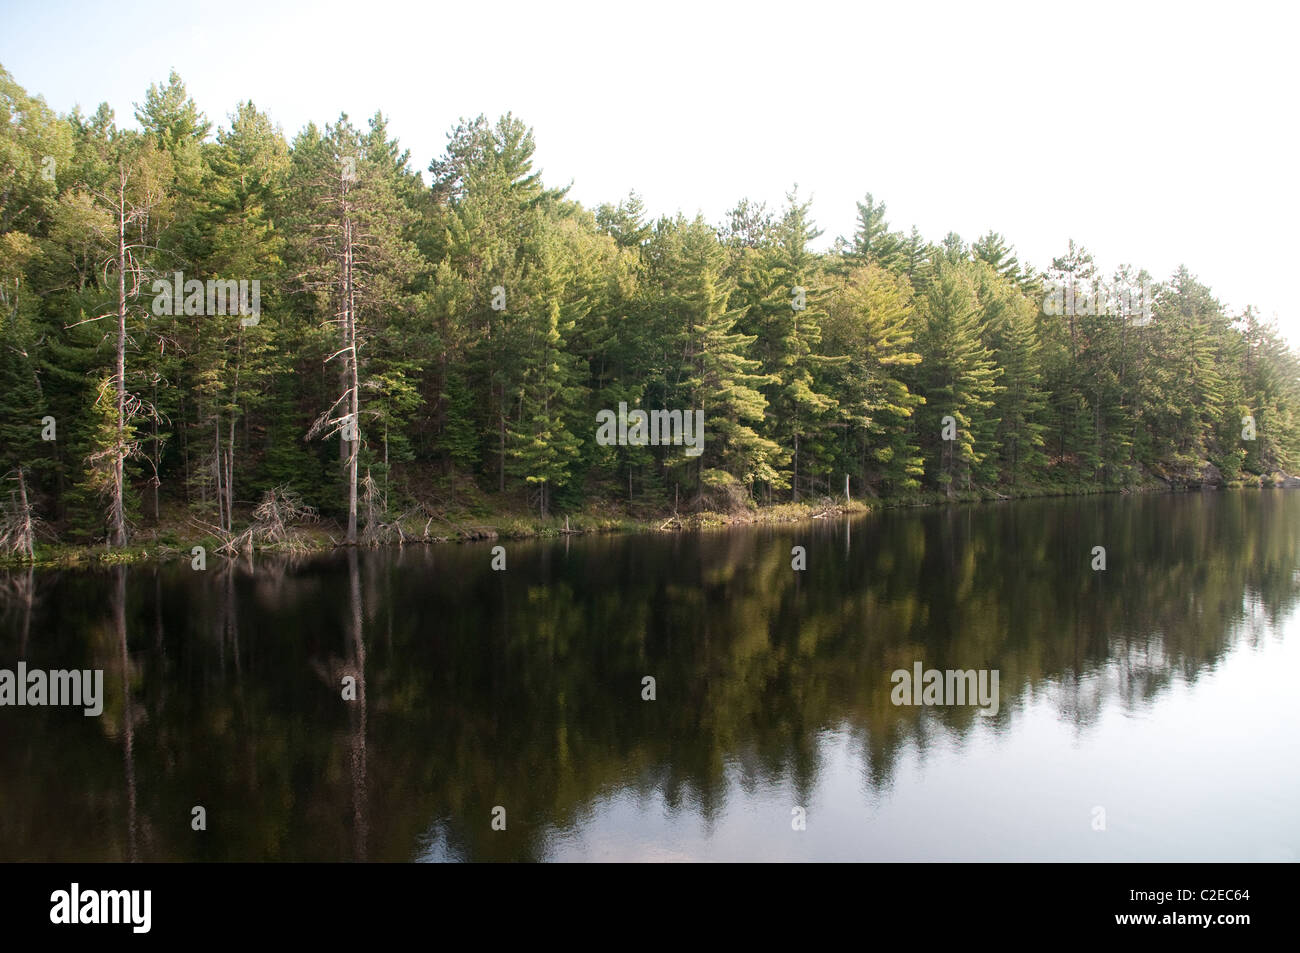 A view of Essens Lake at Bon Echo Provincial Park in Southern Ontario, Canada. - Stock Image